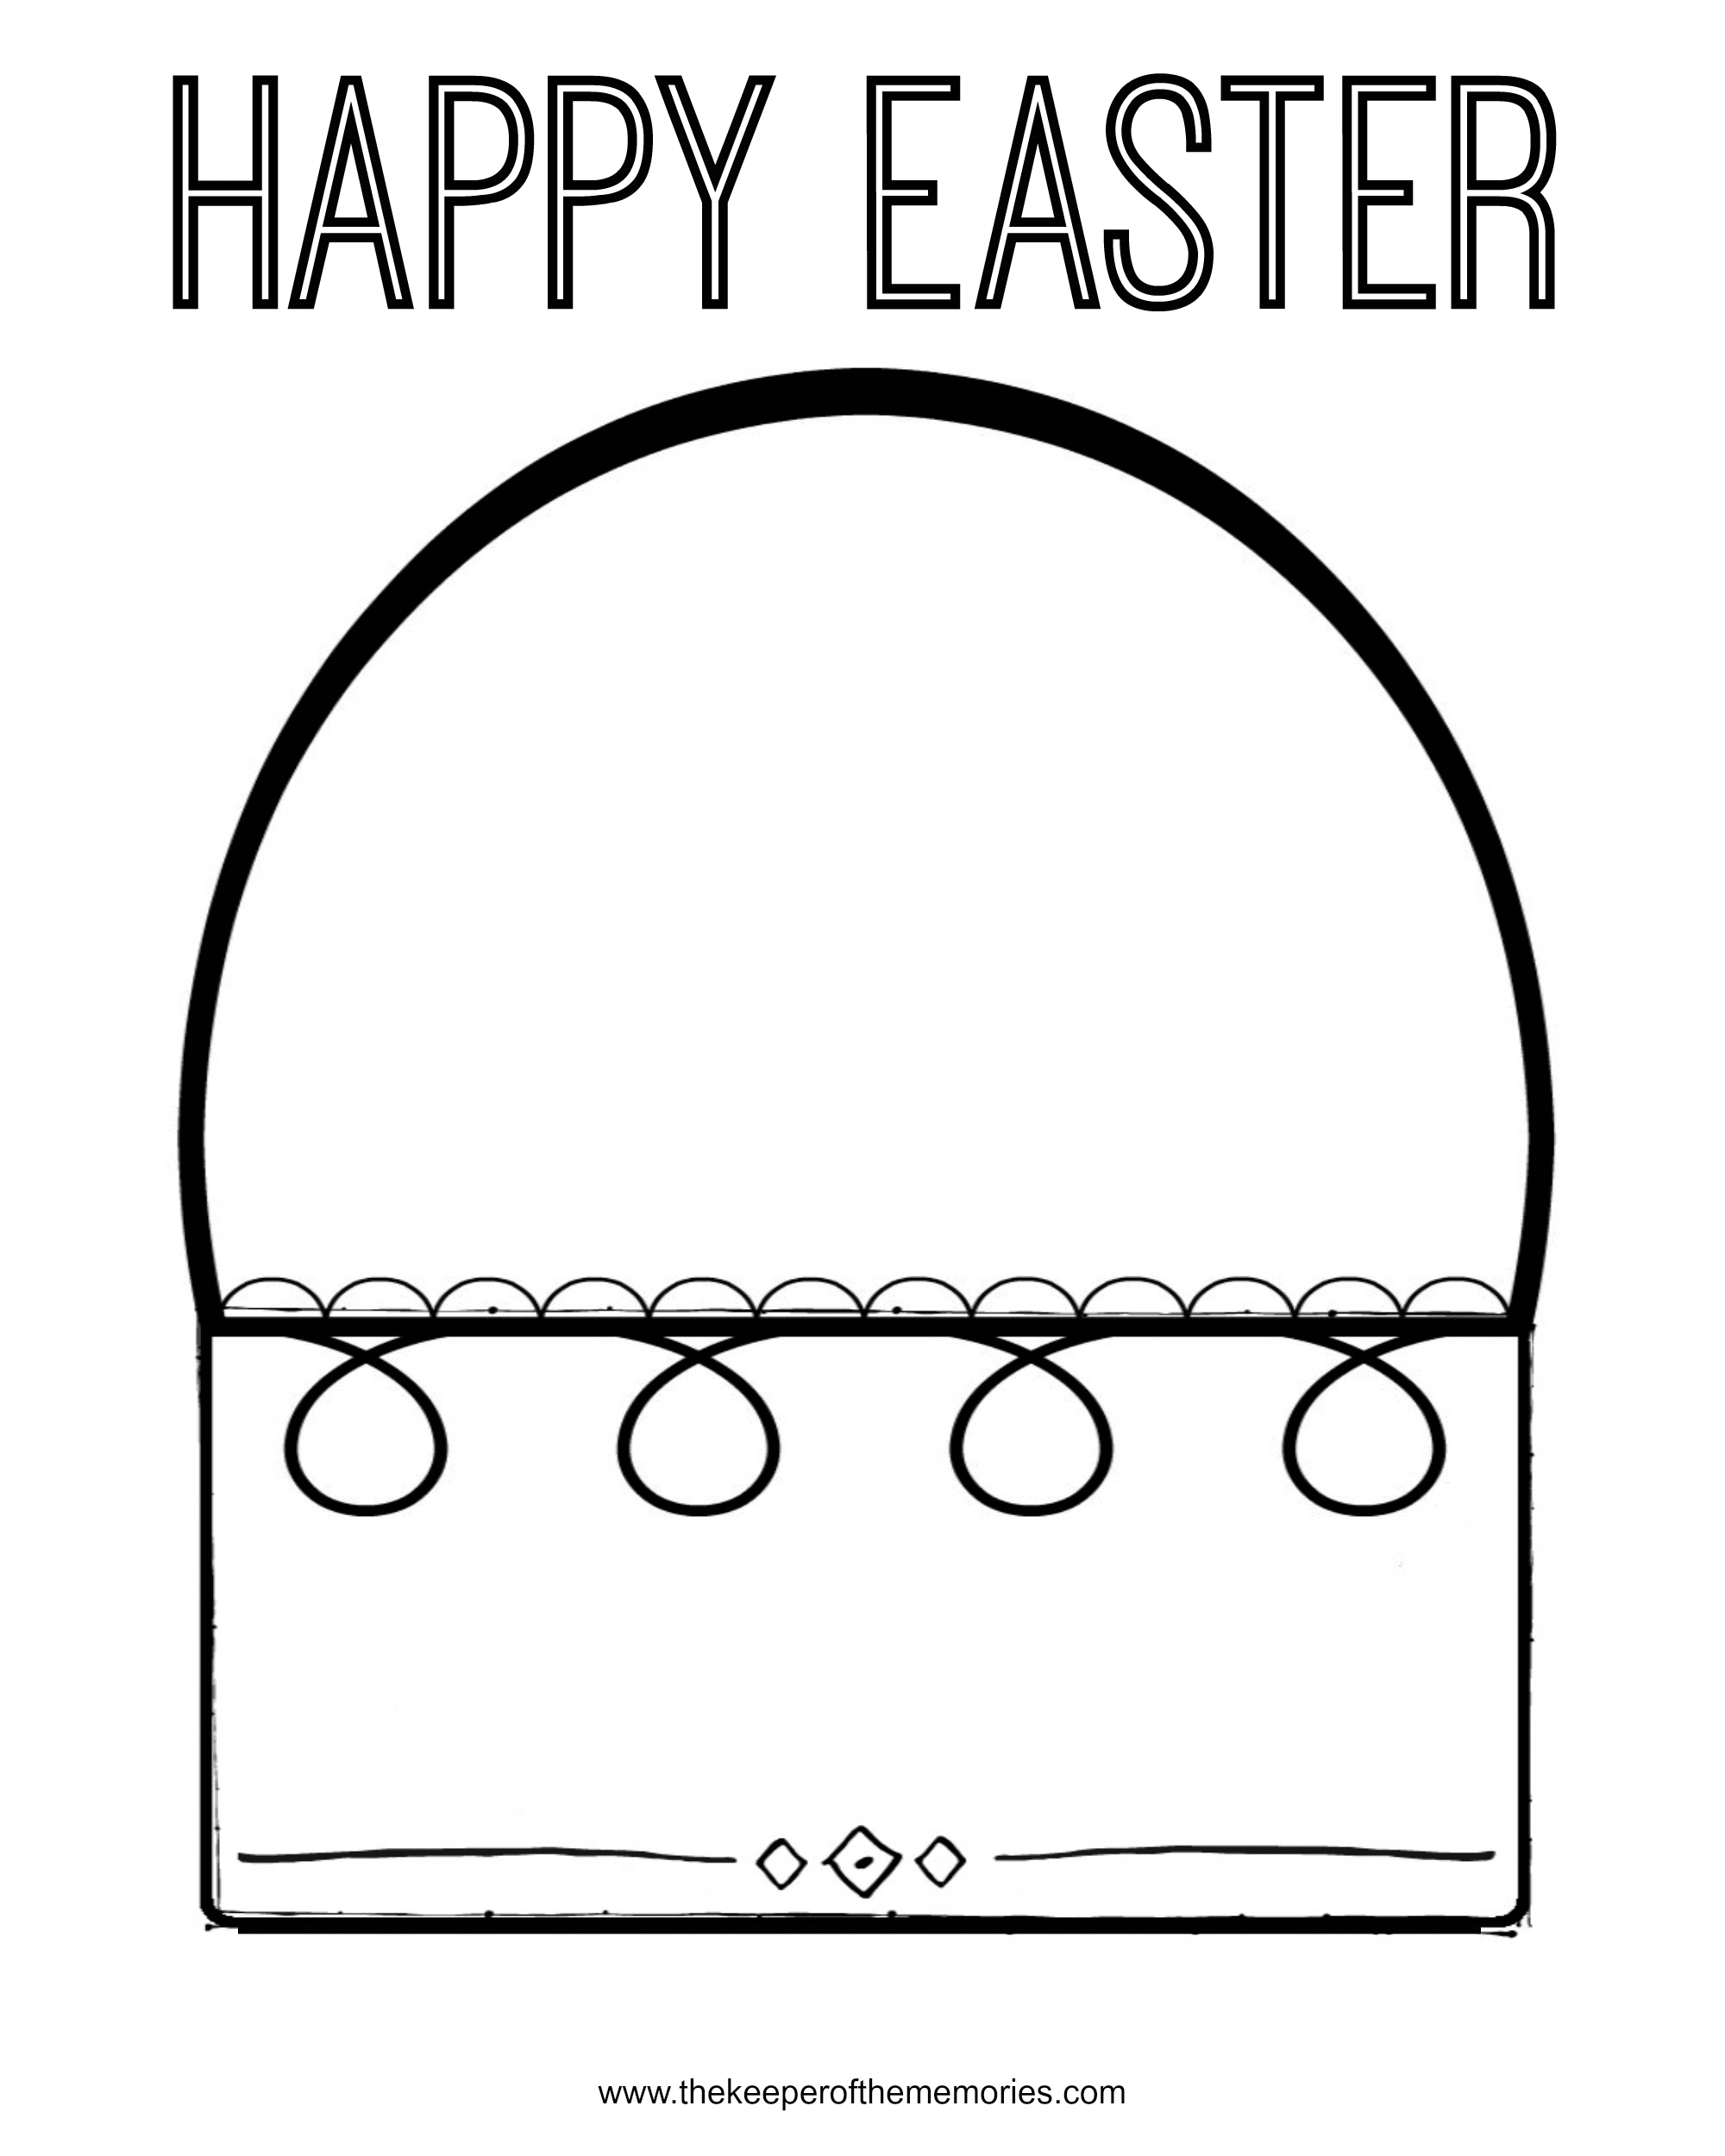 - Free Printable Easter Coloring Pages For Preschoolers - The Keeper